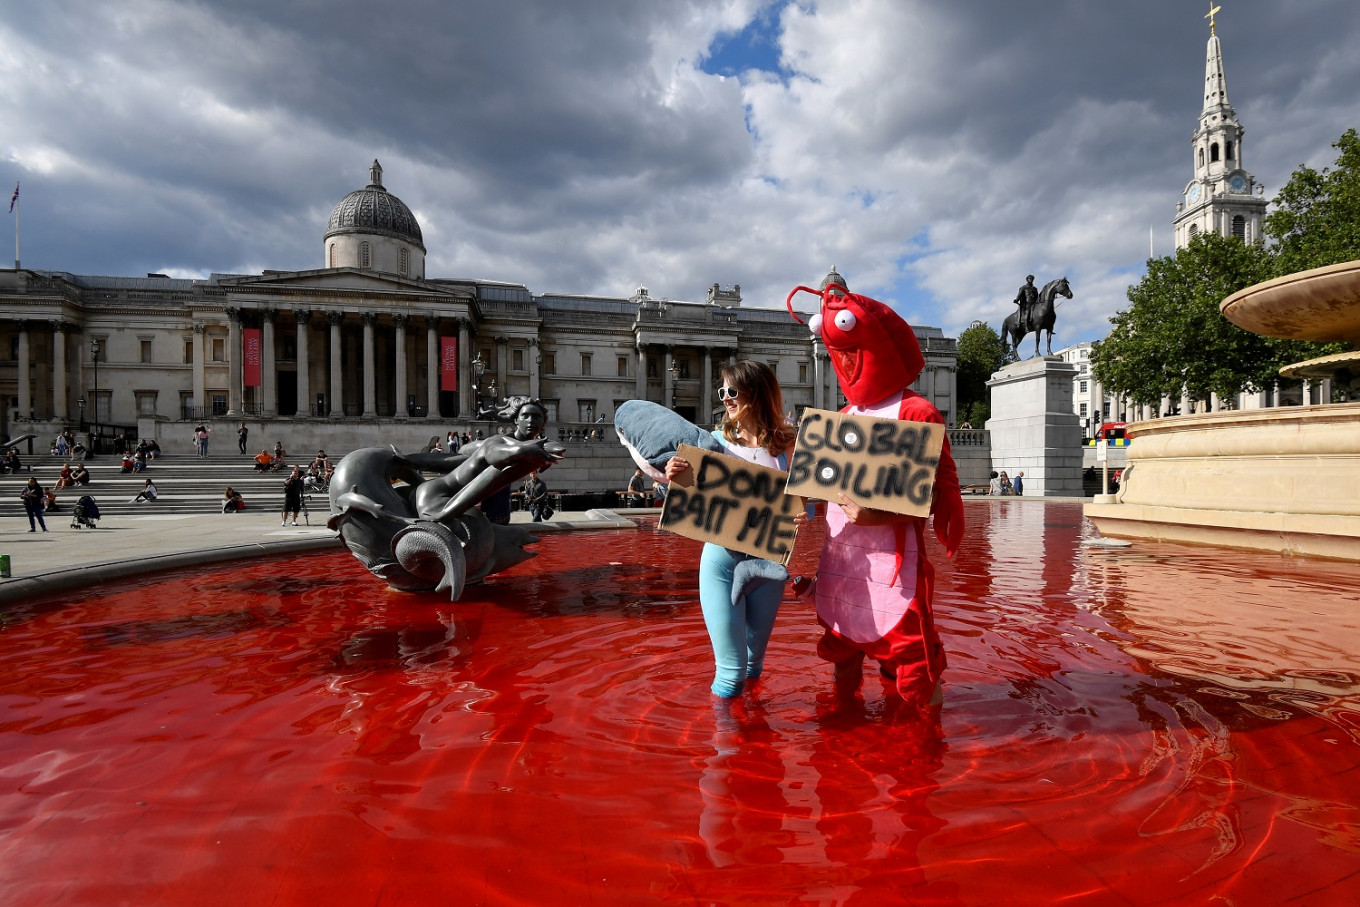 Animal rights protesters dye fountains red in London's Trafalgar Square